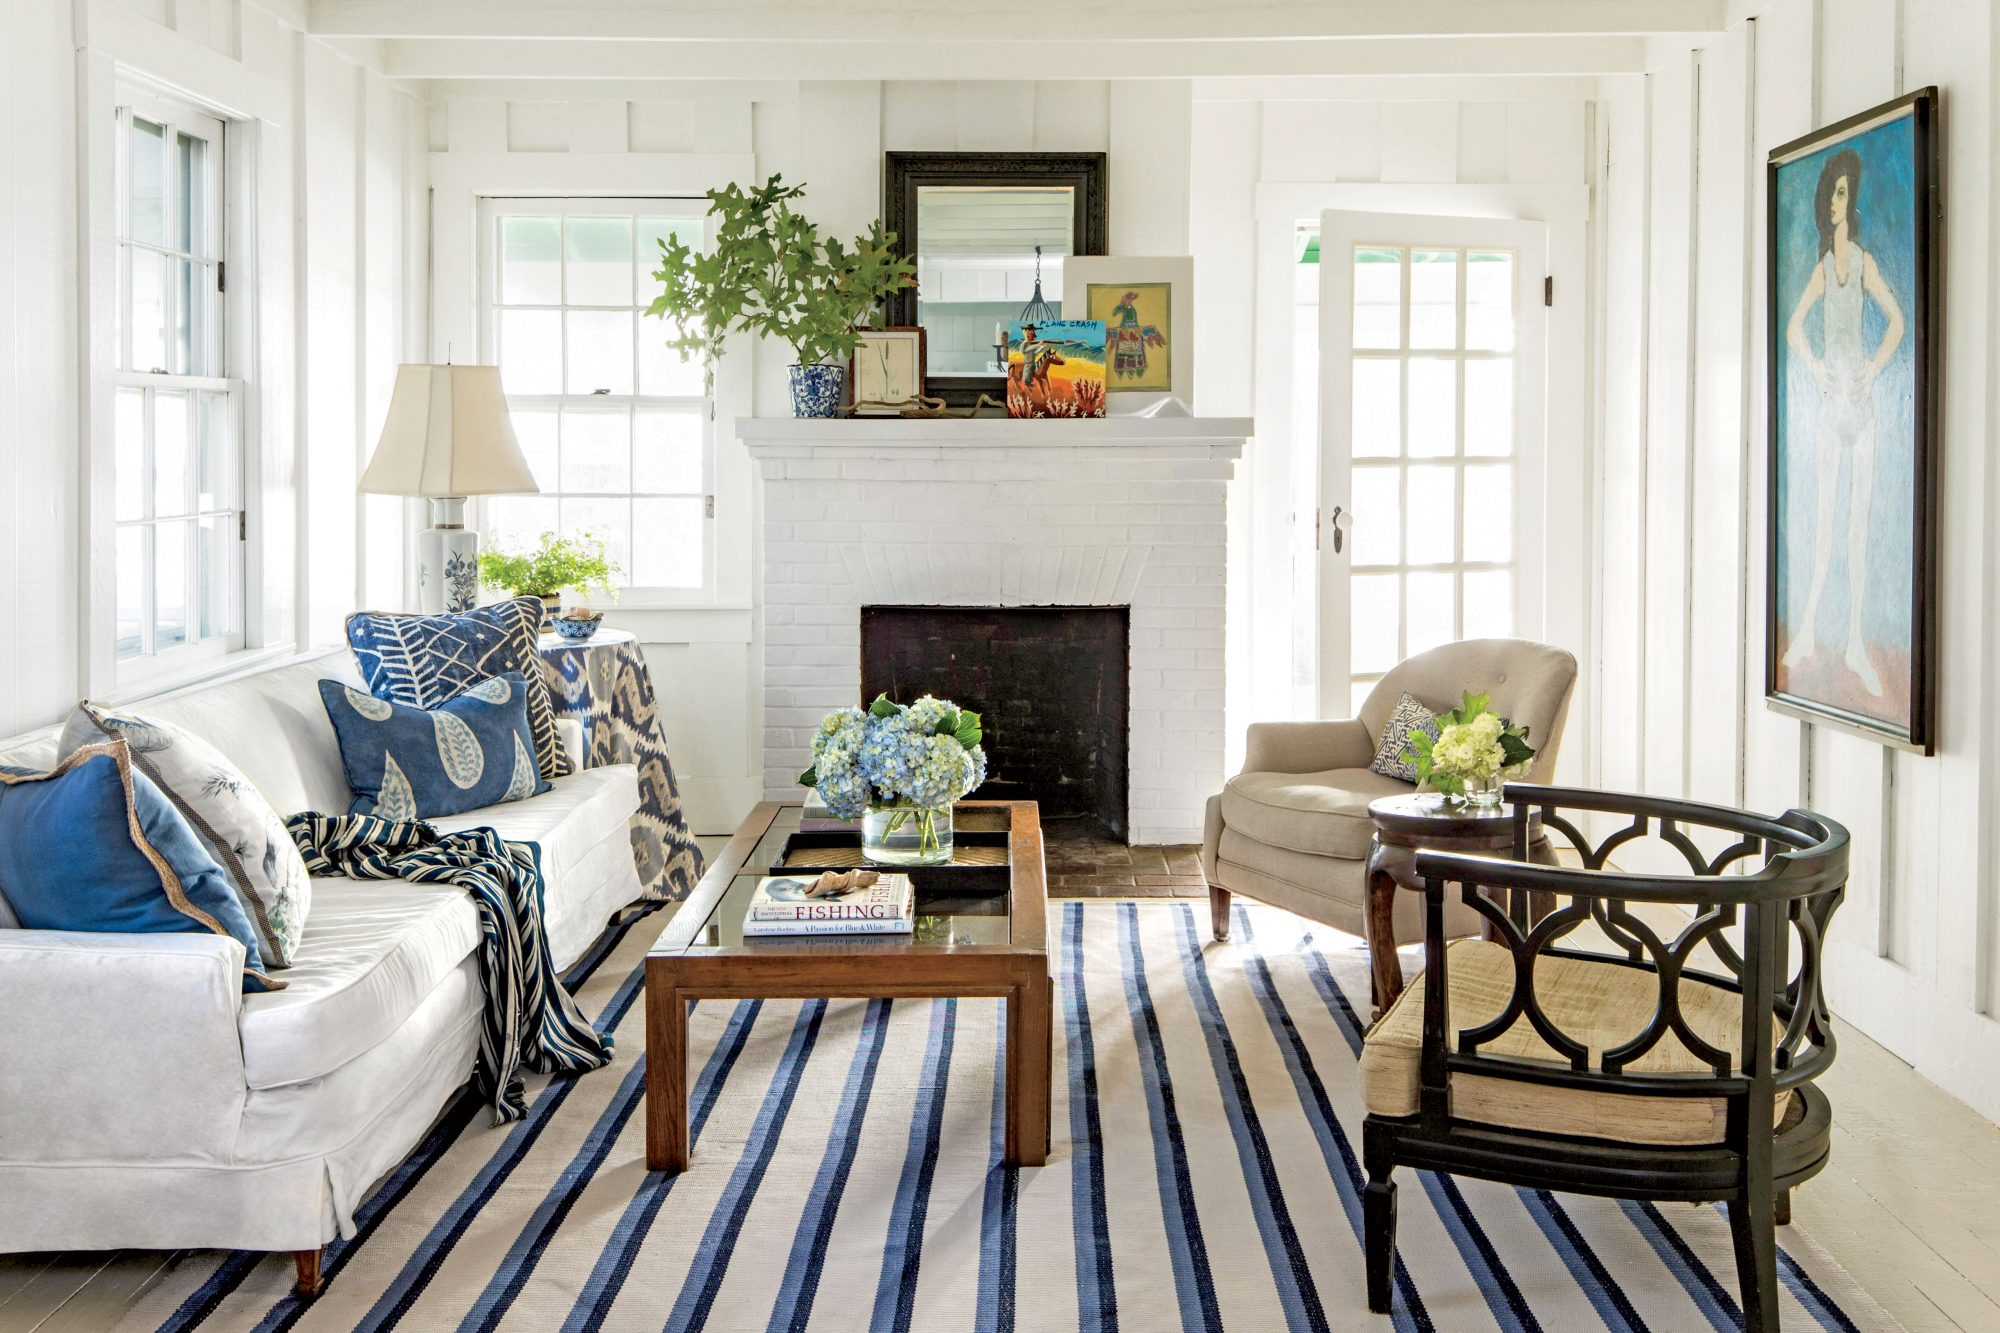 River House living room with white walls and blue accents